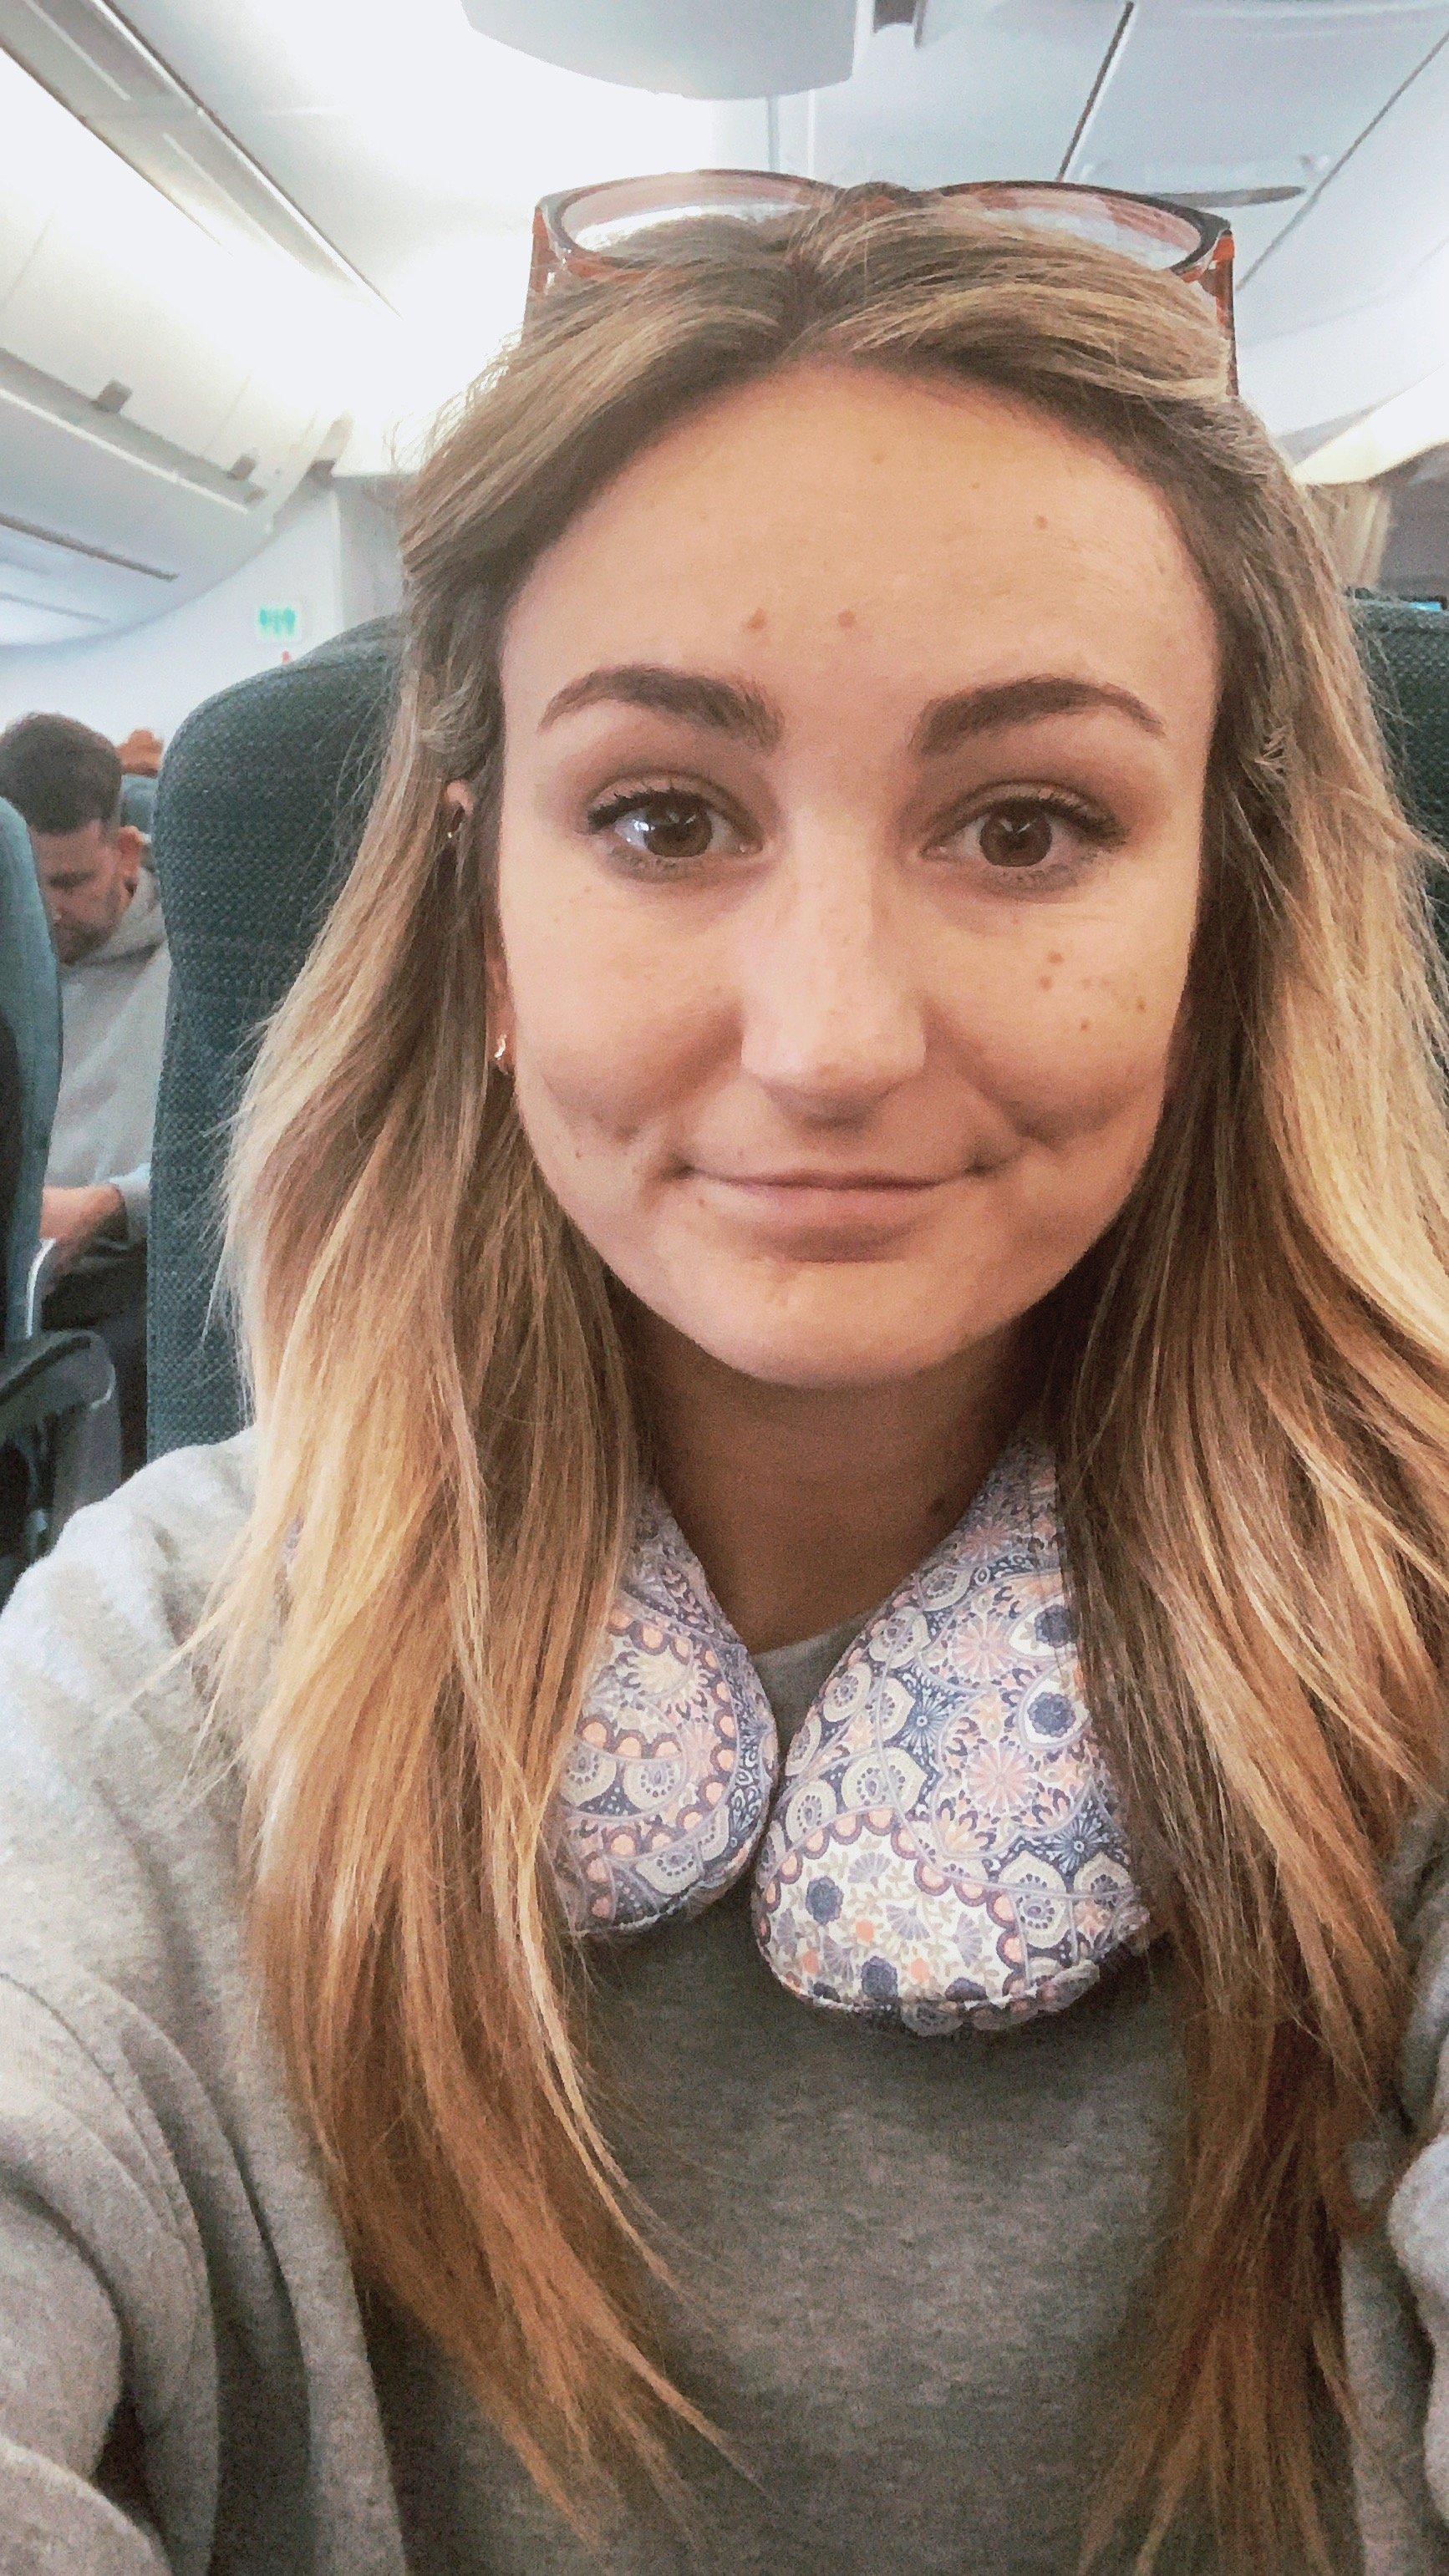 selfie with kneck pillow on long haul flight from London to Australia March 2019